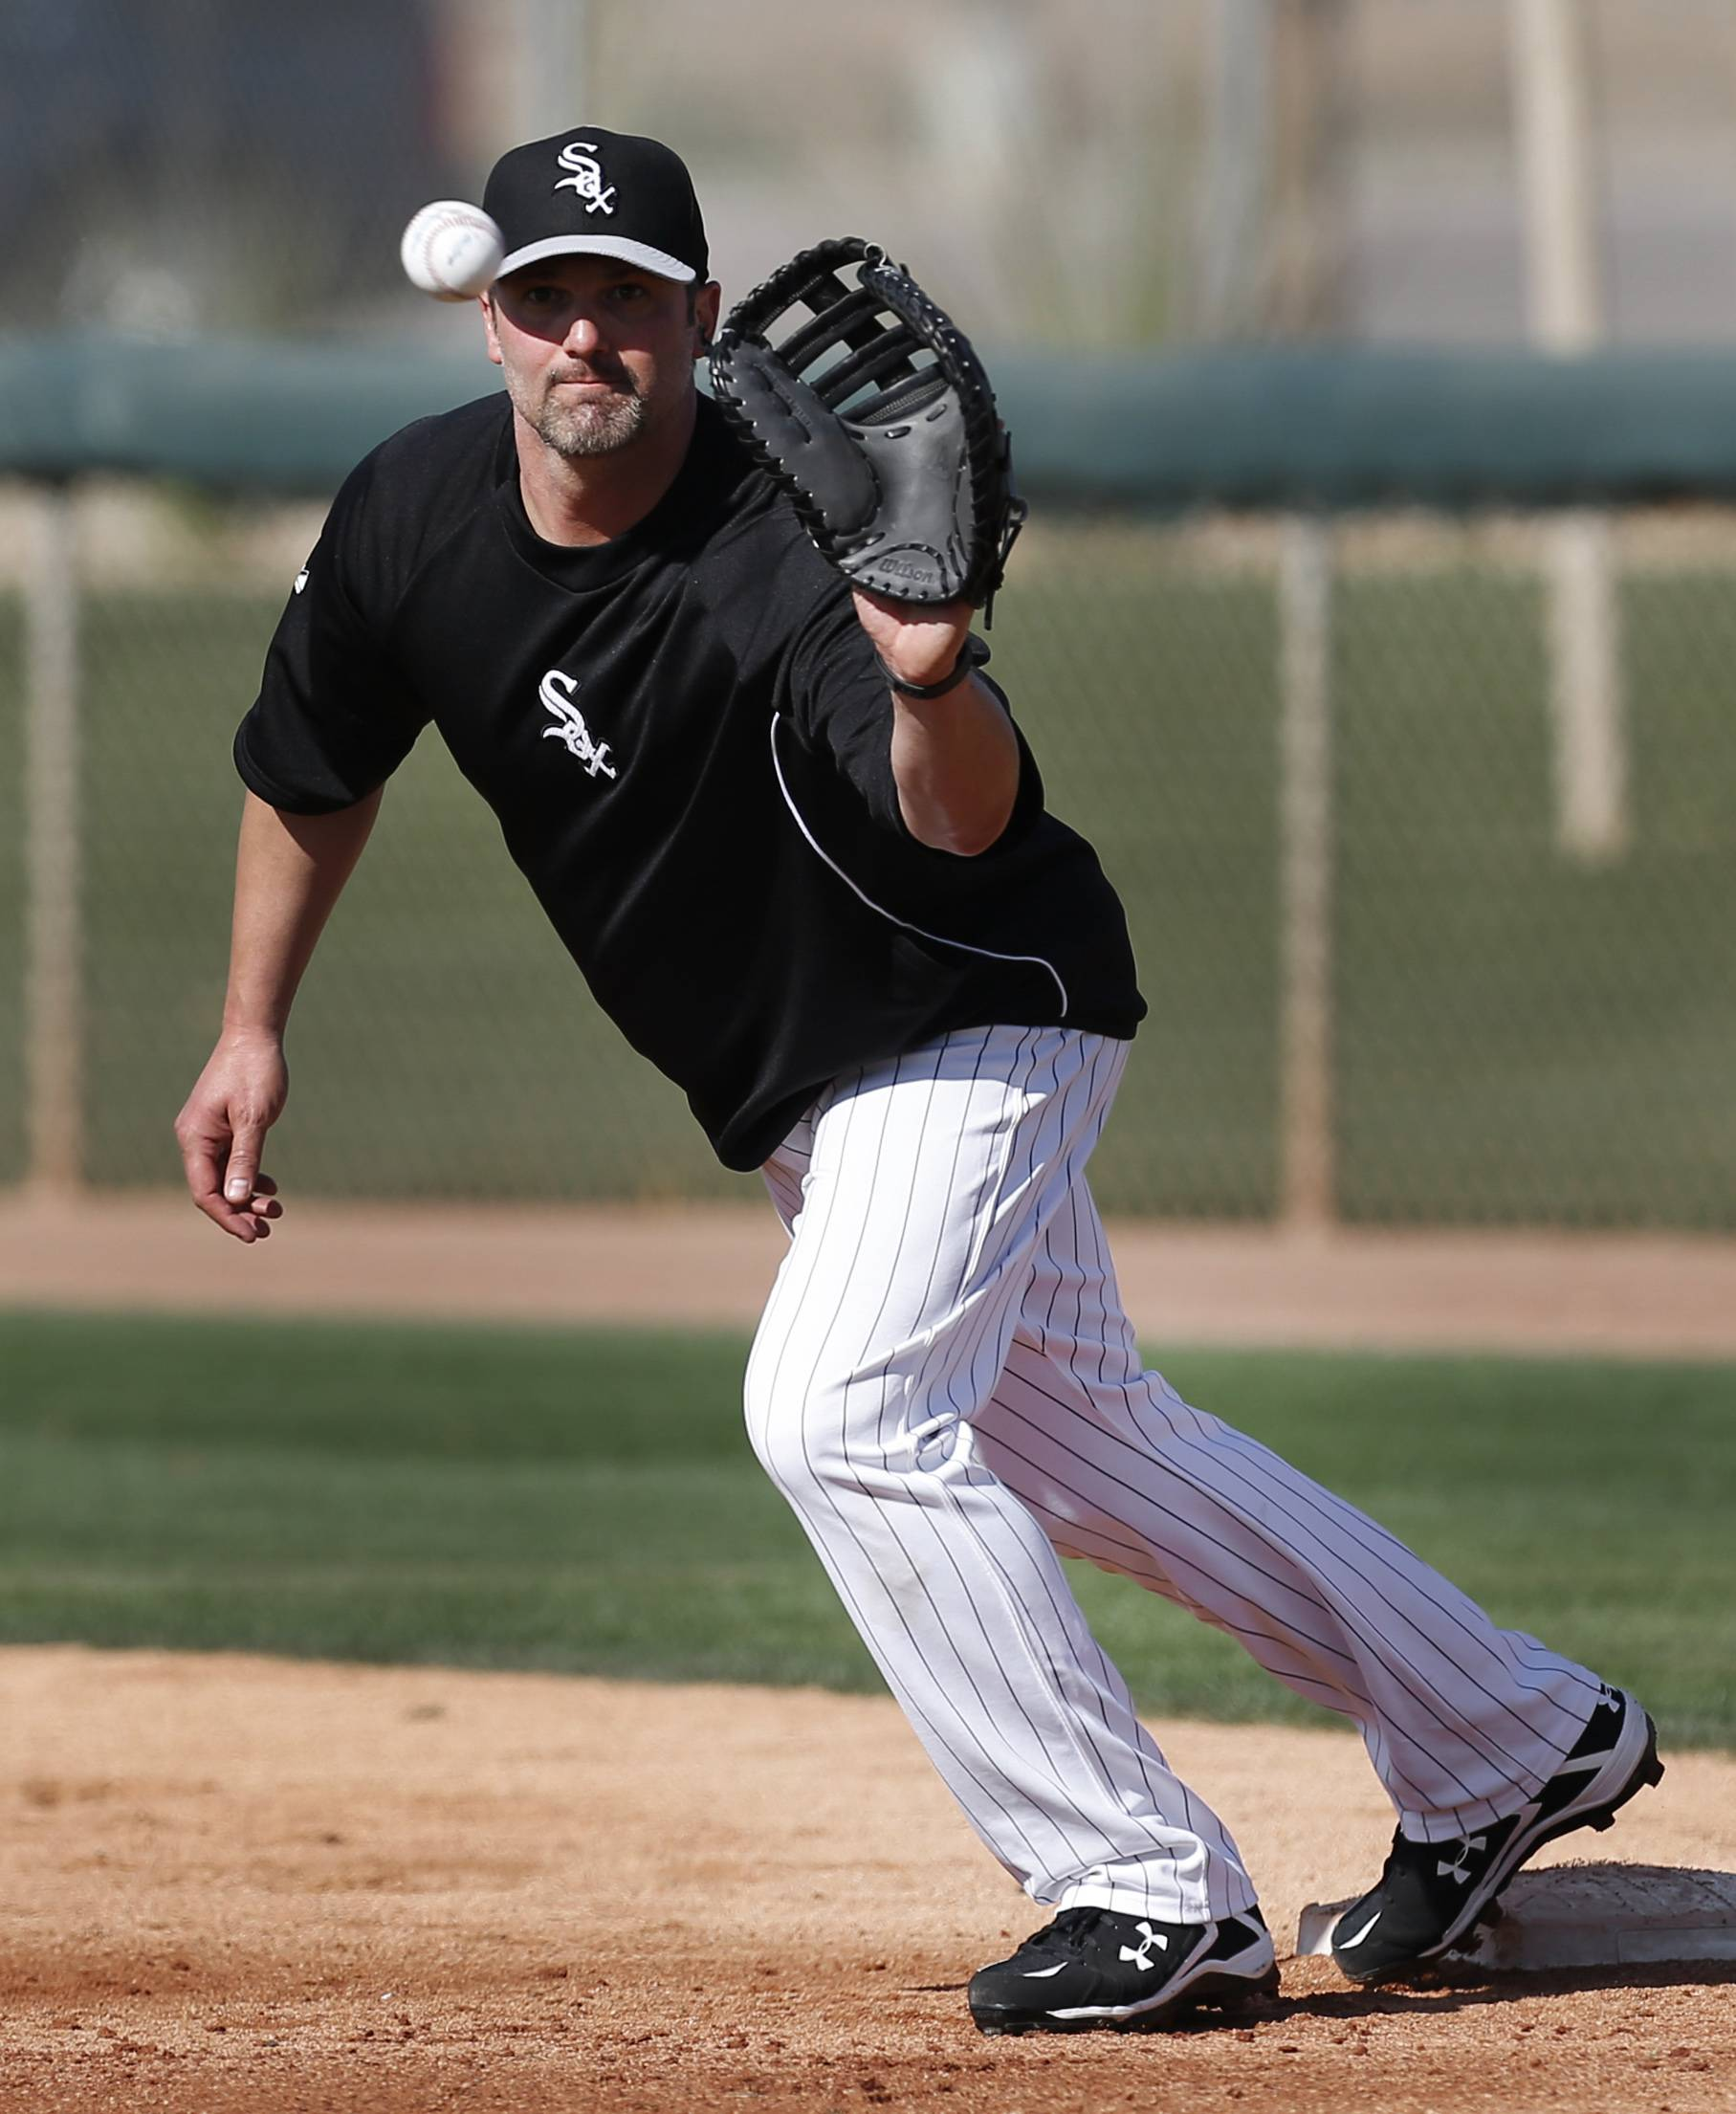 Chicago White Sox first baseman Paul Konerko catches a baseball during baseball spring training in Glendale, Ariz., Saturday.